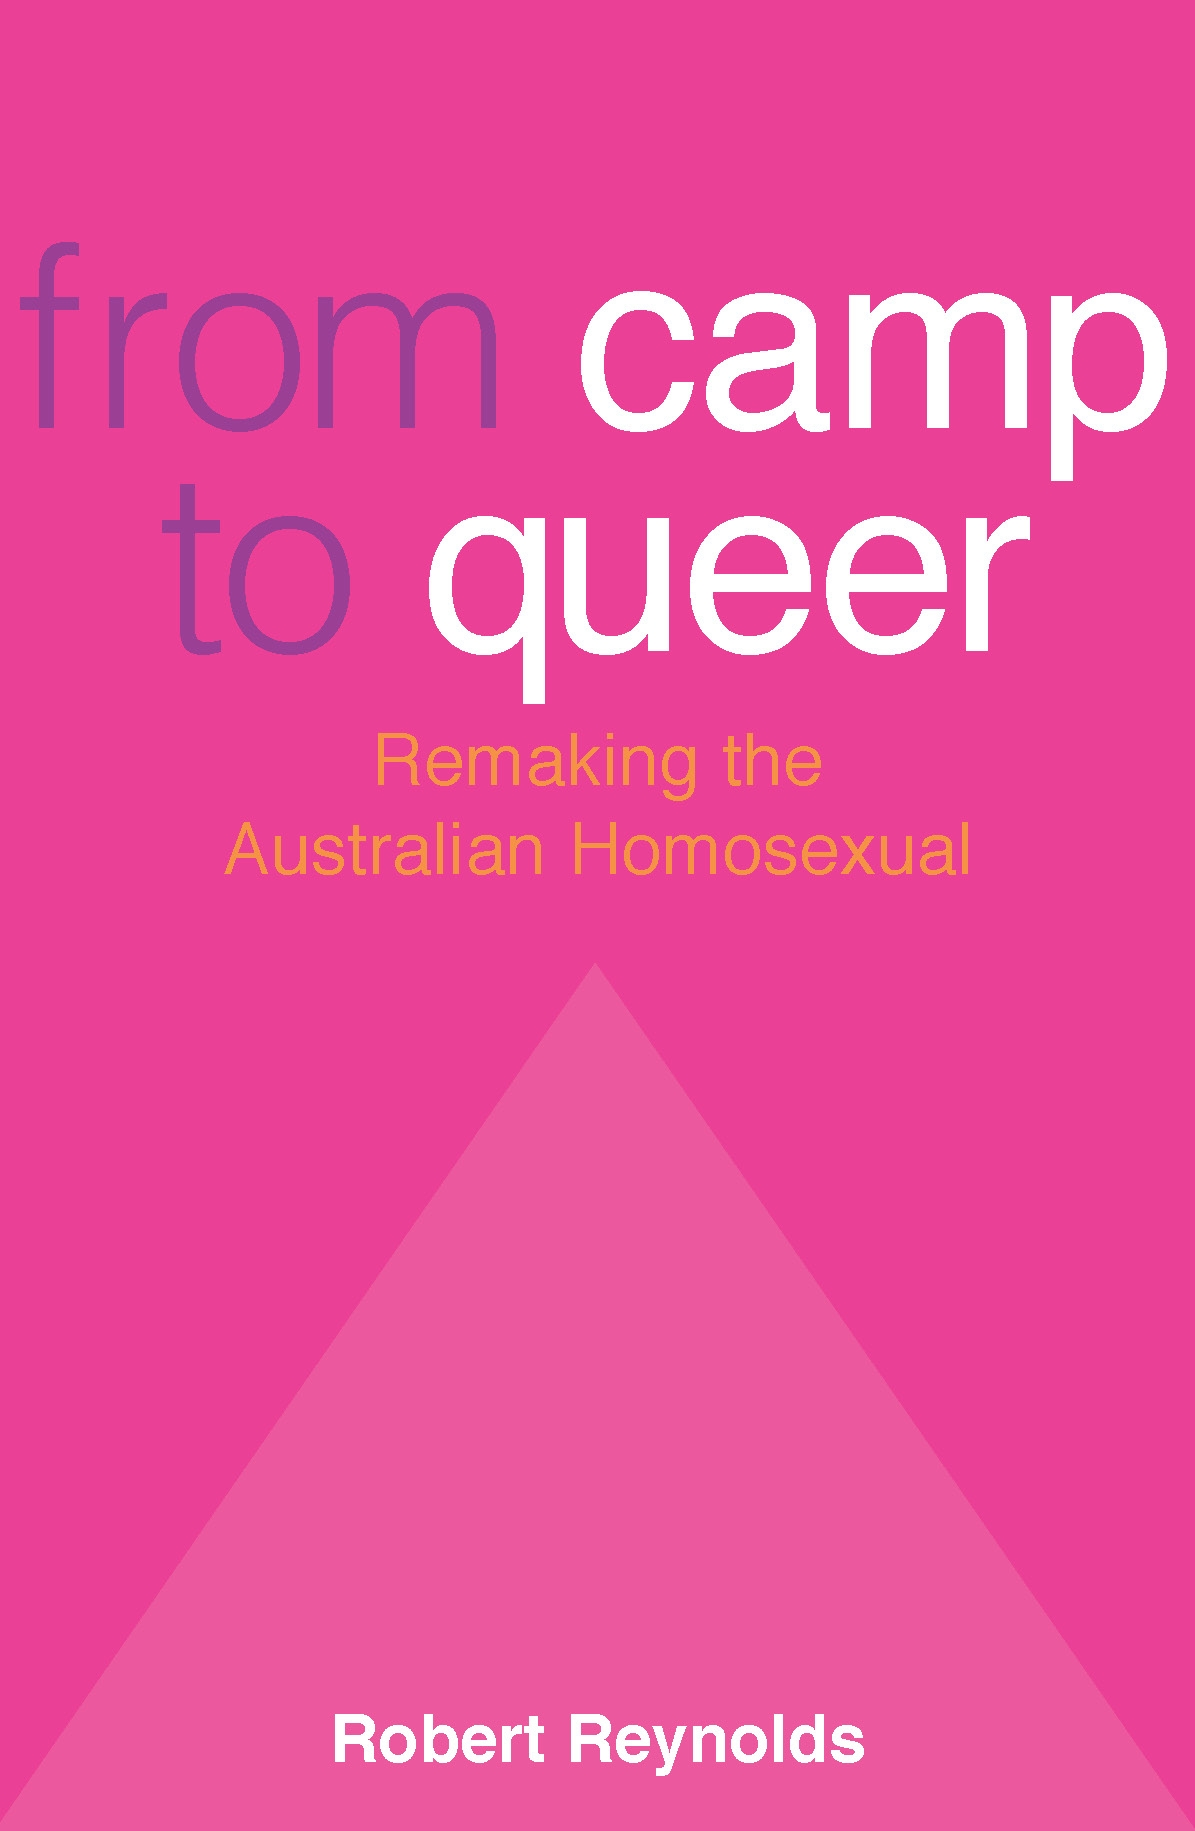 from-camp-to-queer-paperback-softback20190311-4-kmhiw2